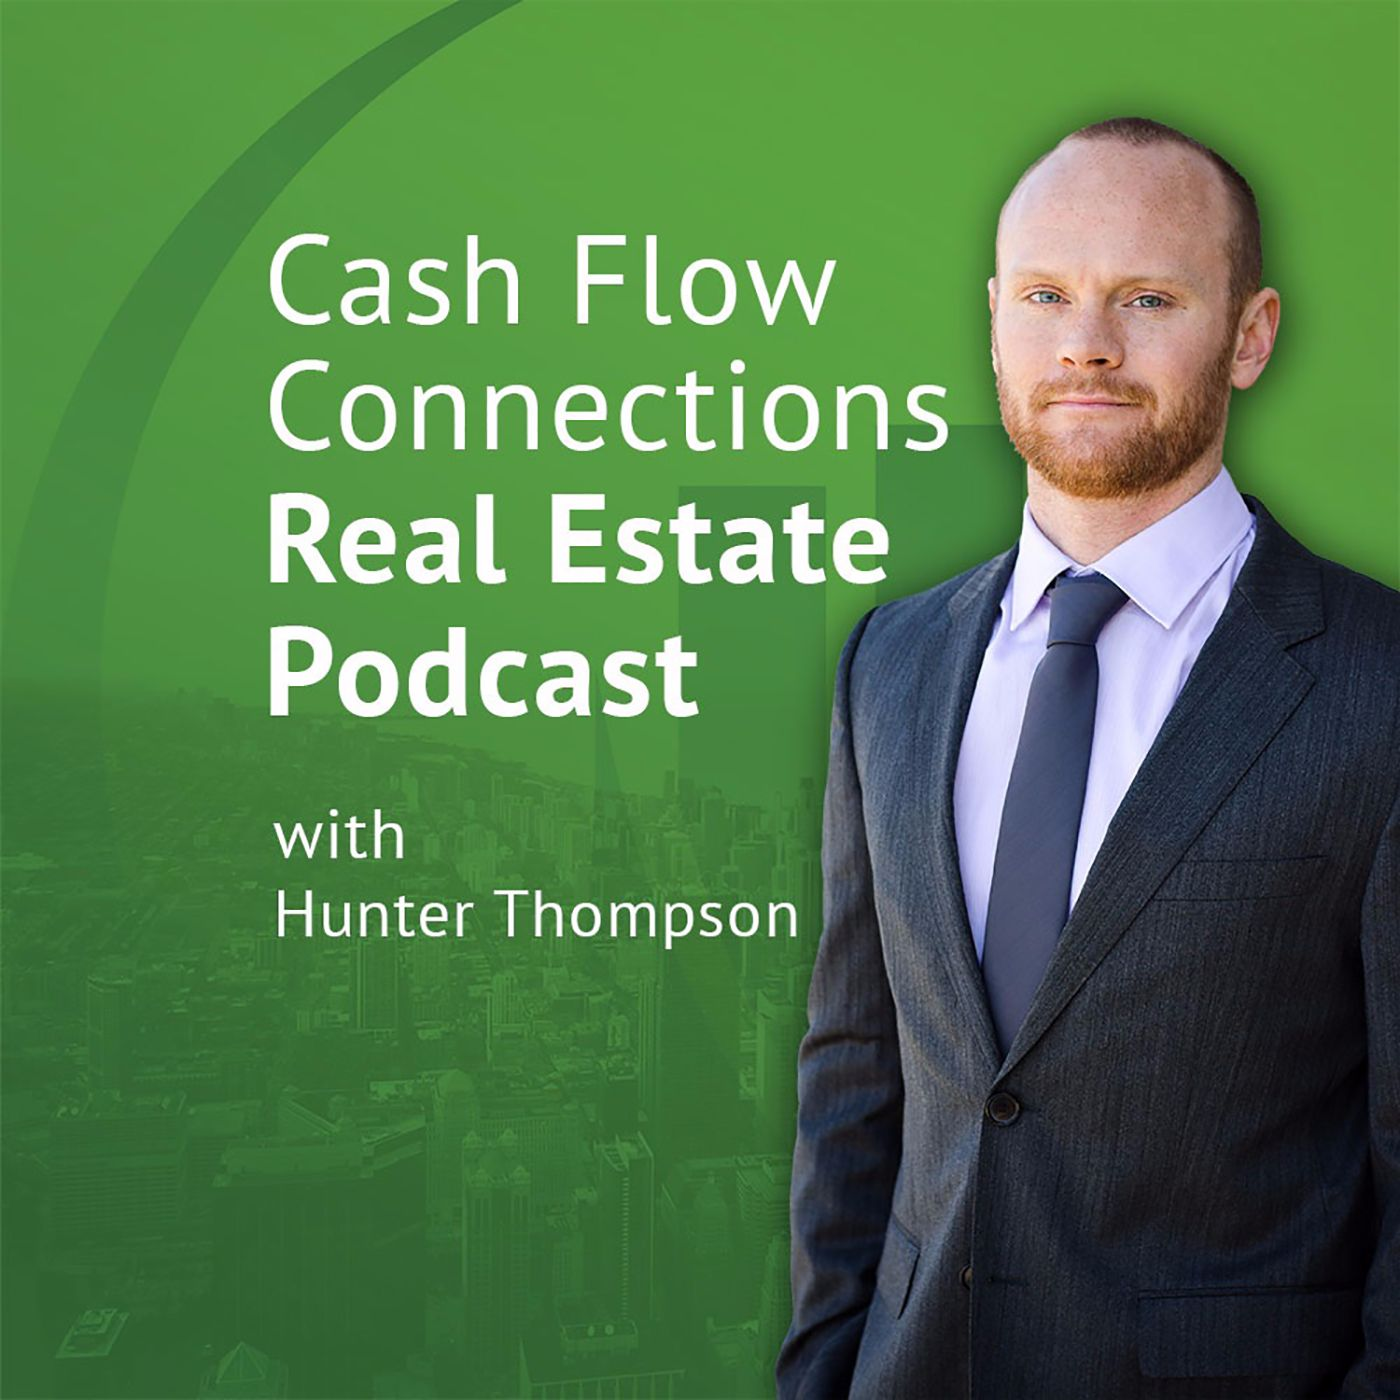 E269 - What Should Savvy Passive Investors Be Focused On In 2021? show art